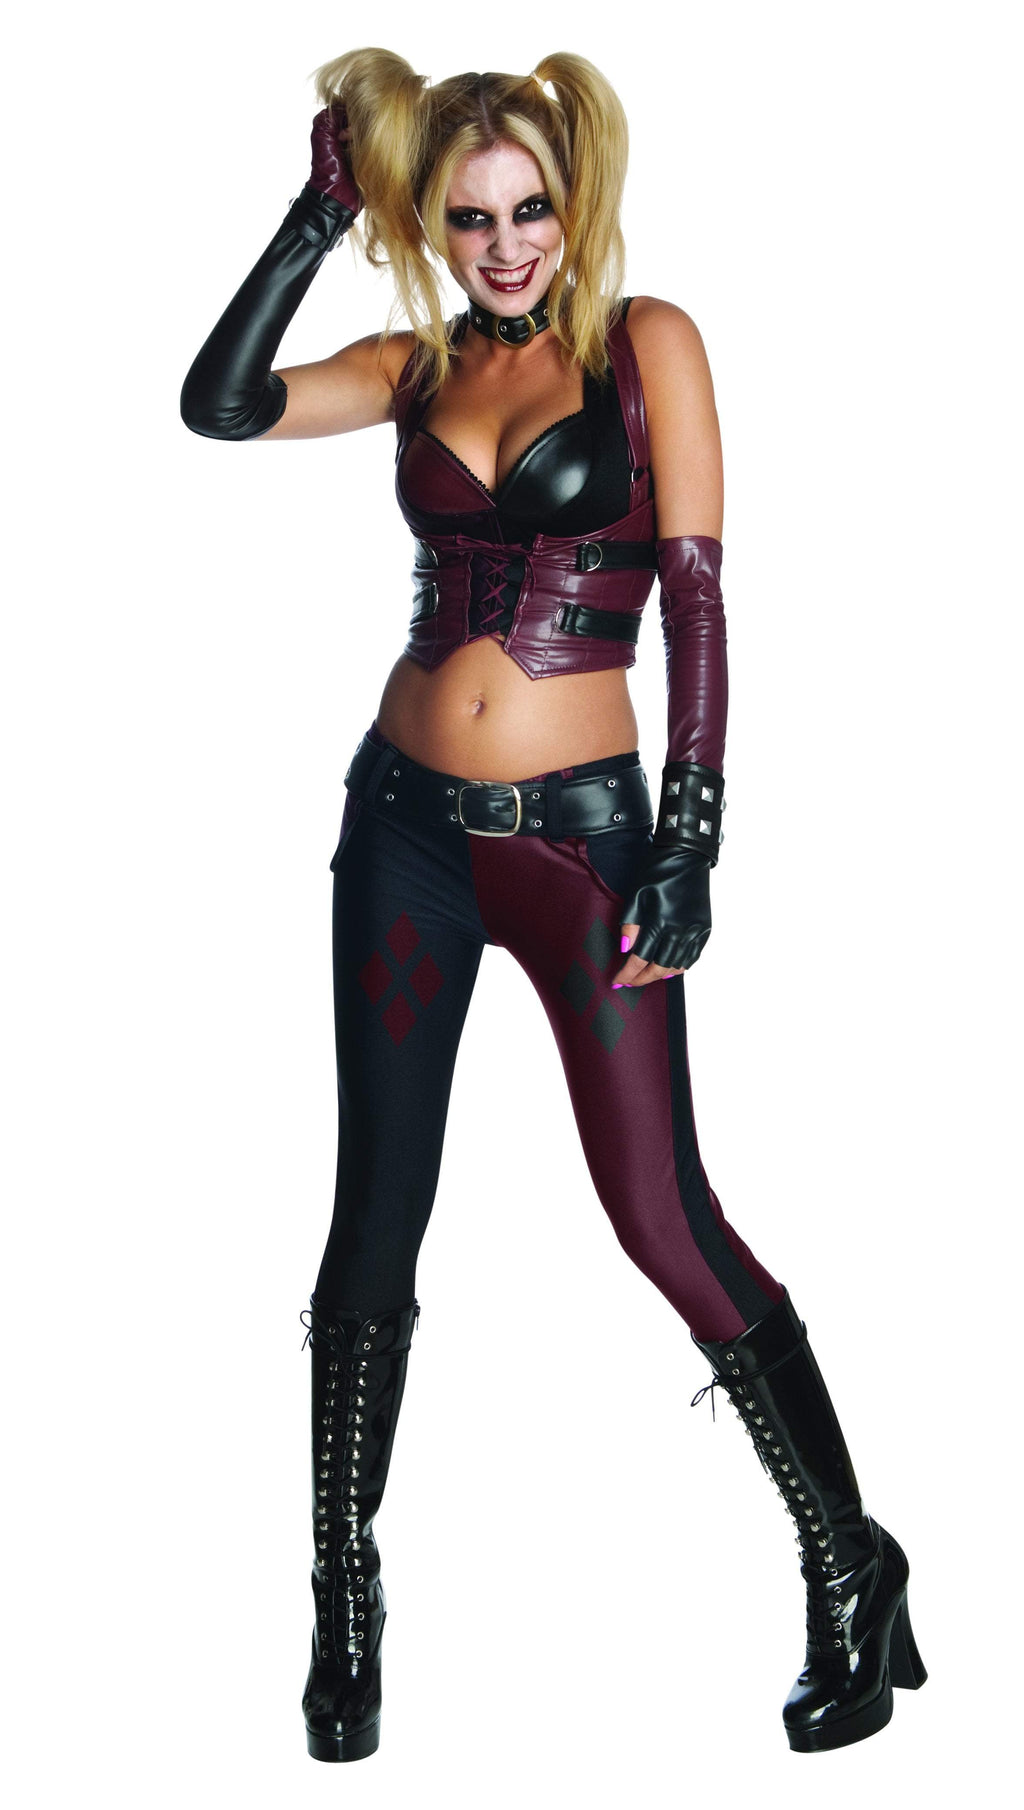 Rubies Staging Adult Harley Quinn Costume - Batman